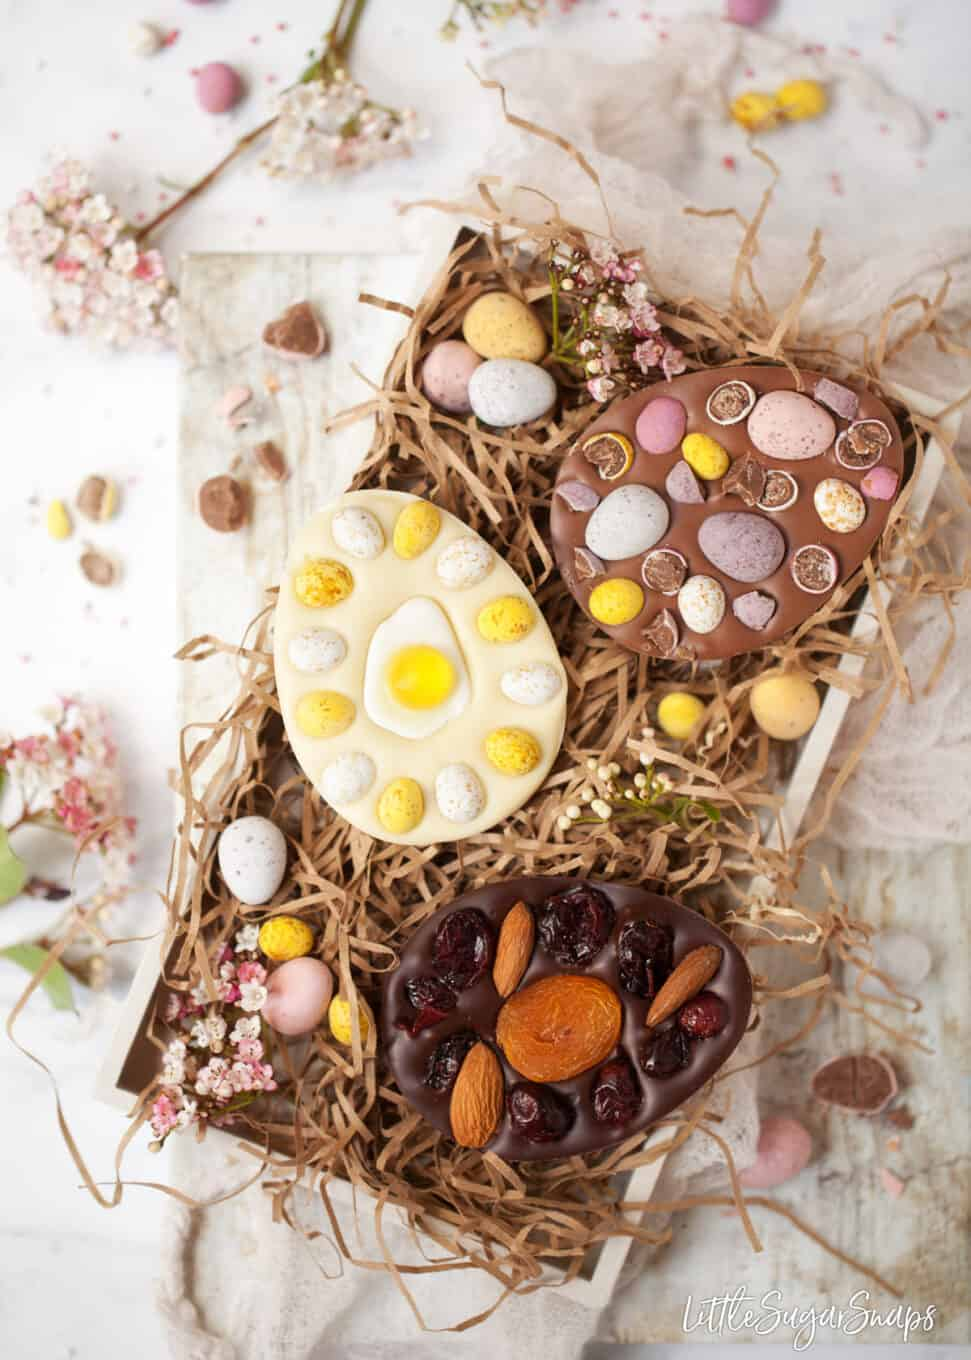 A tray of homemade easter eggs with flowers and chocolate mini eggs in the tray